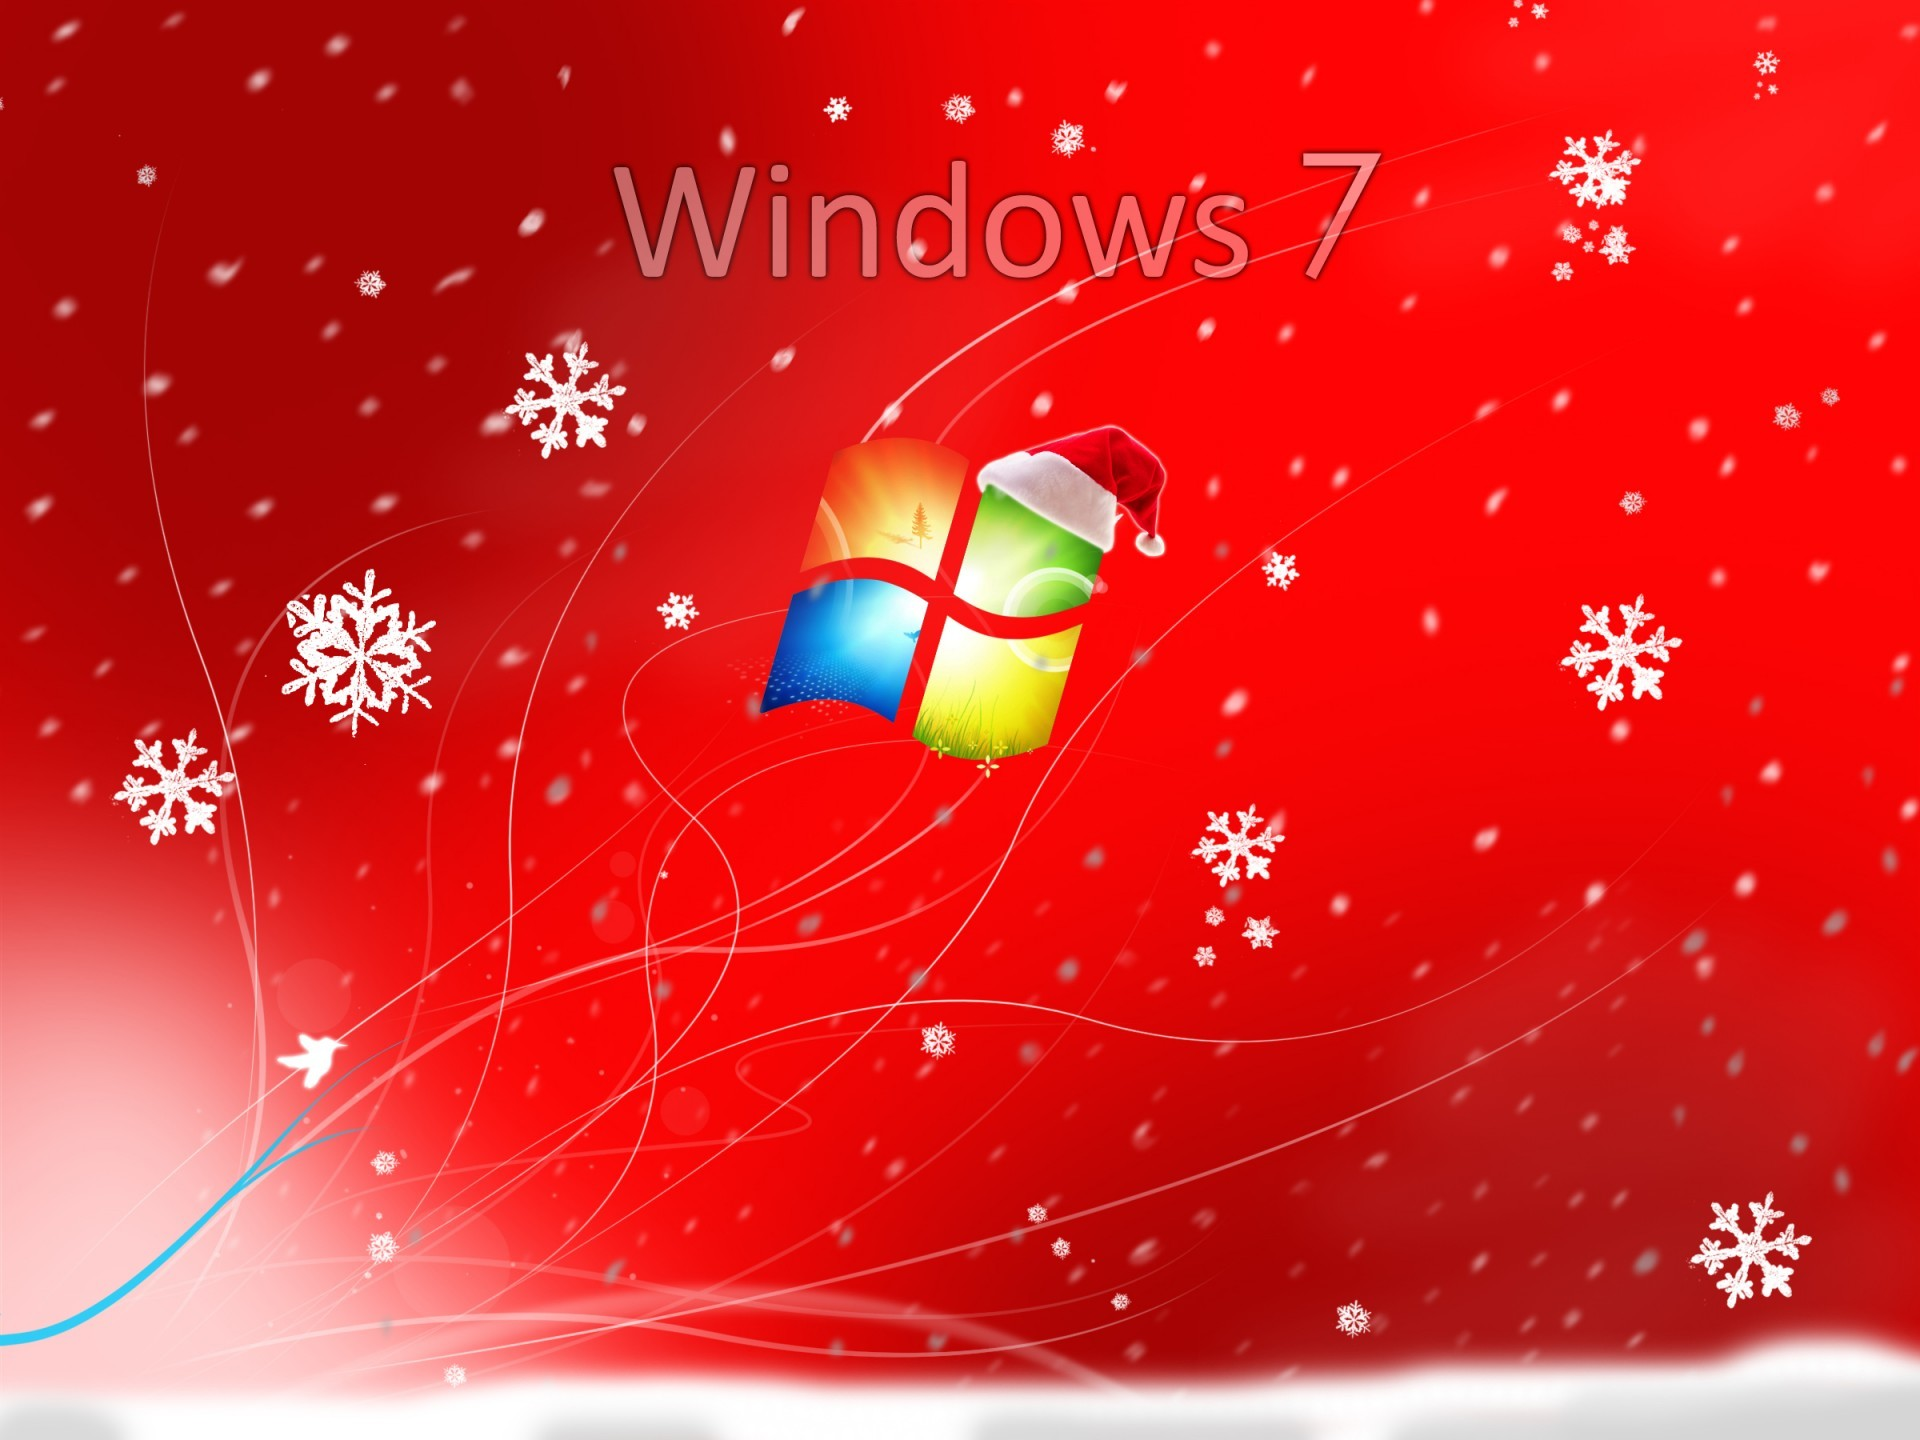 1920x1440 Christmas Wallpapers for Windows 7 HD Wallpaper